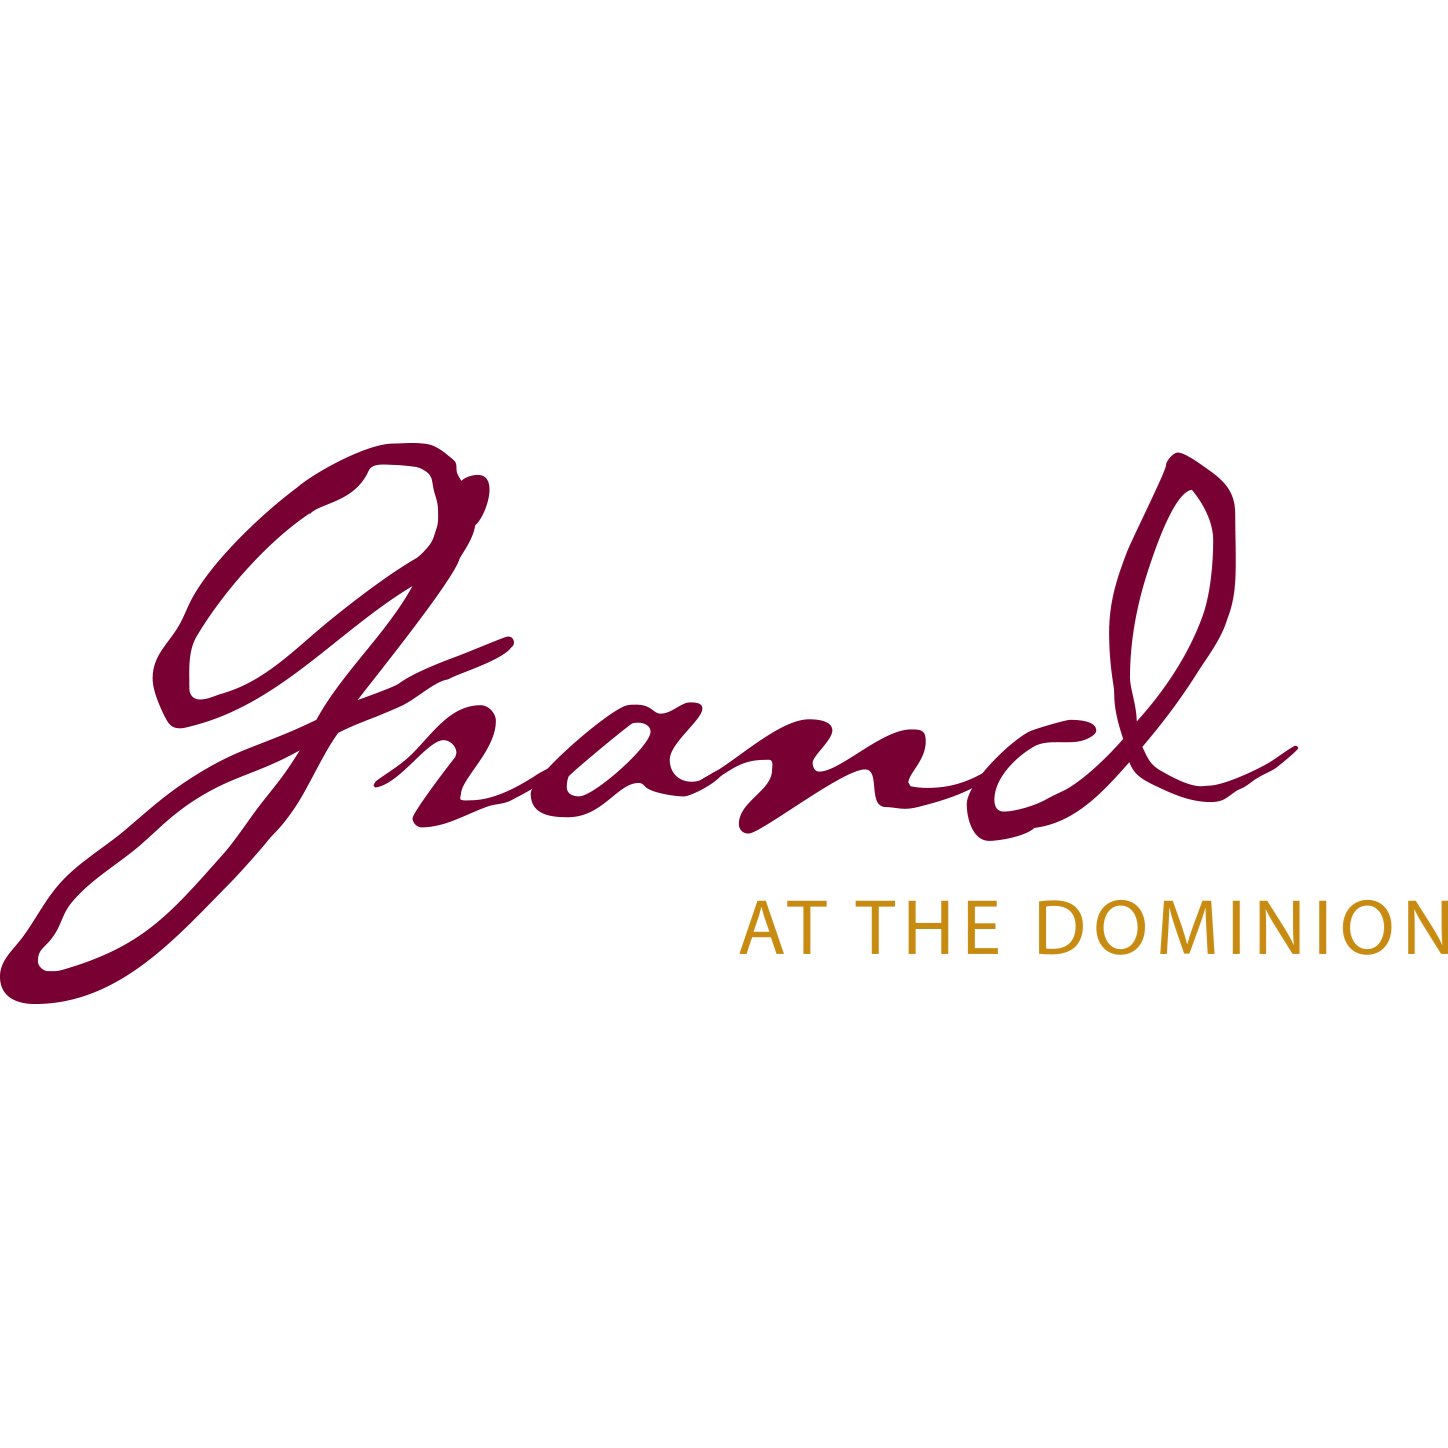 Grand at the Dominion